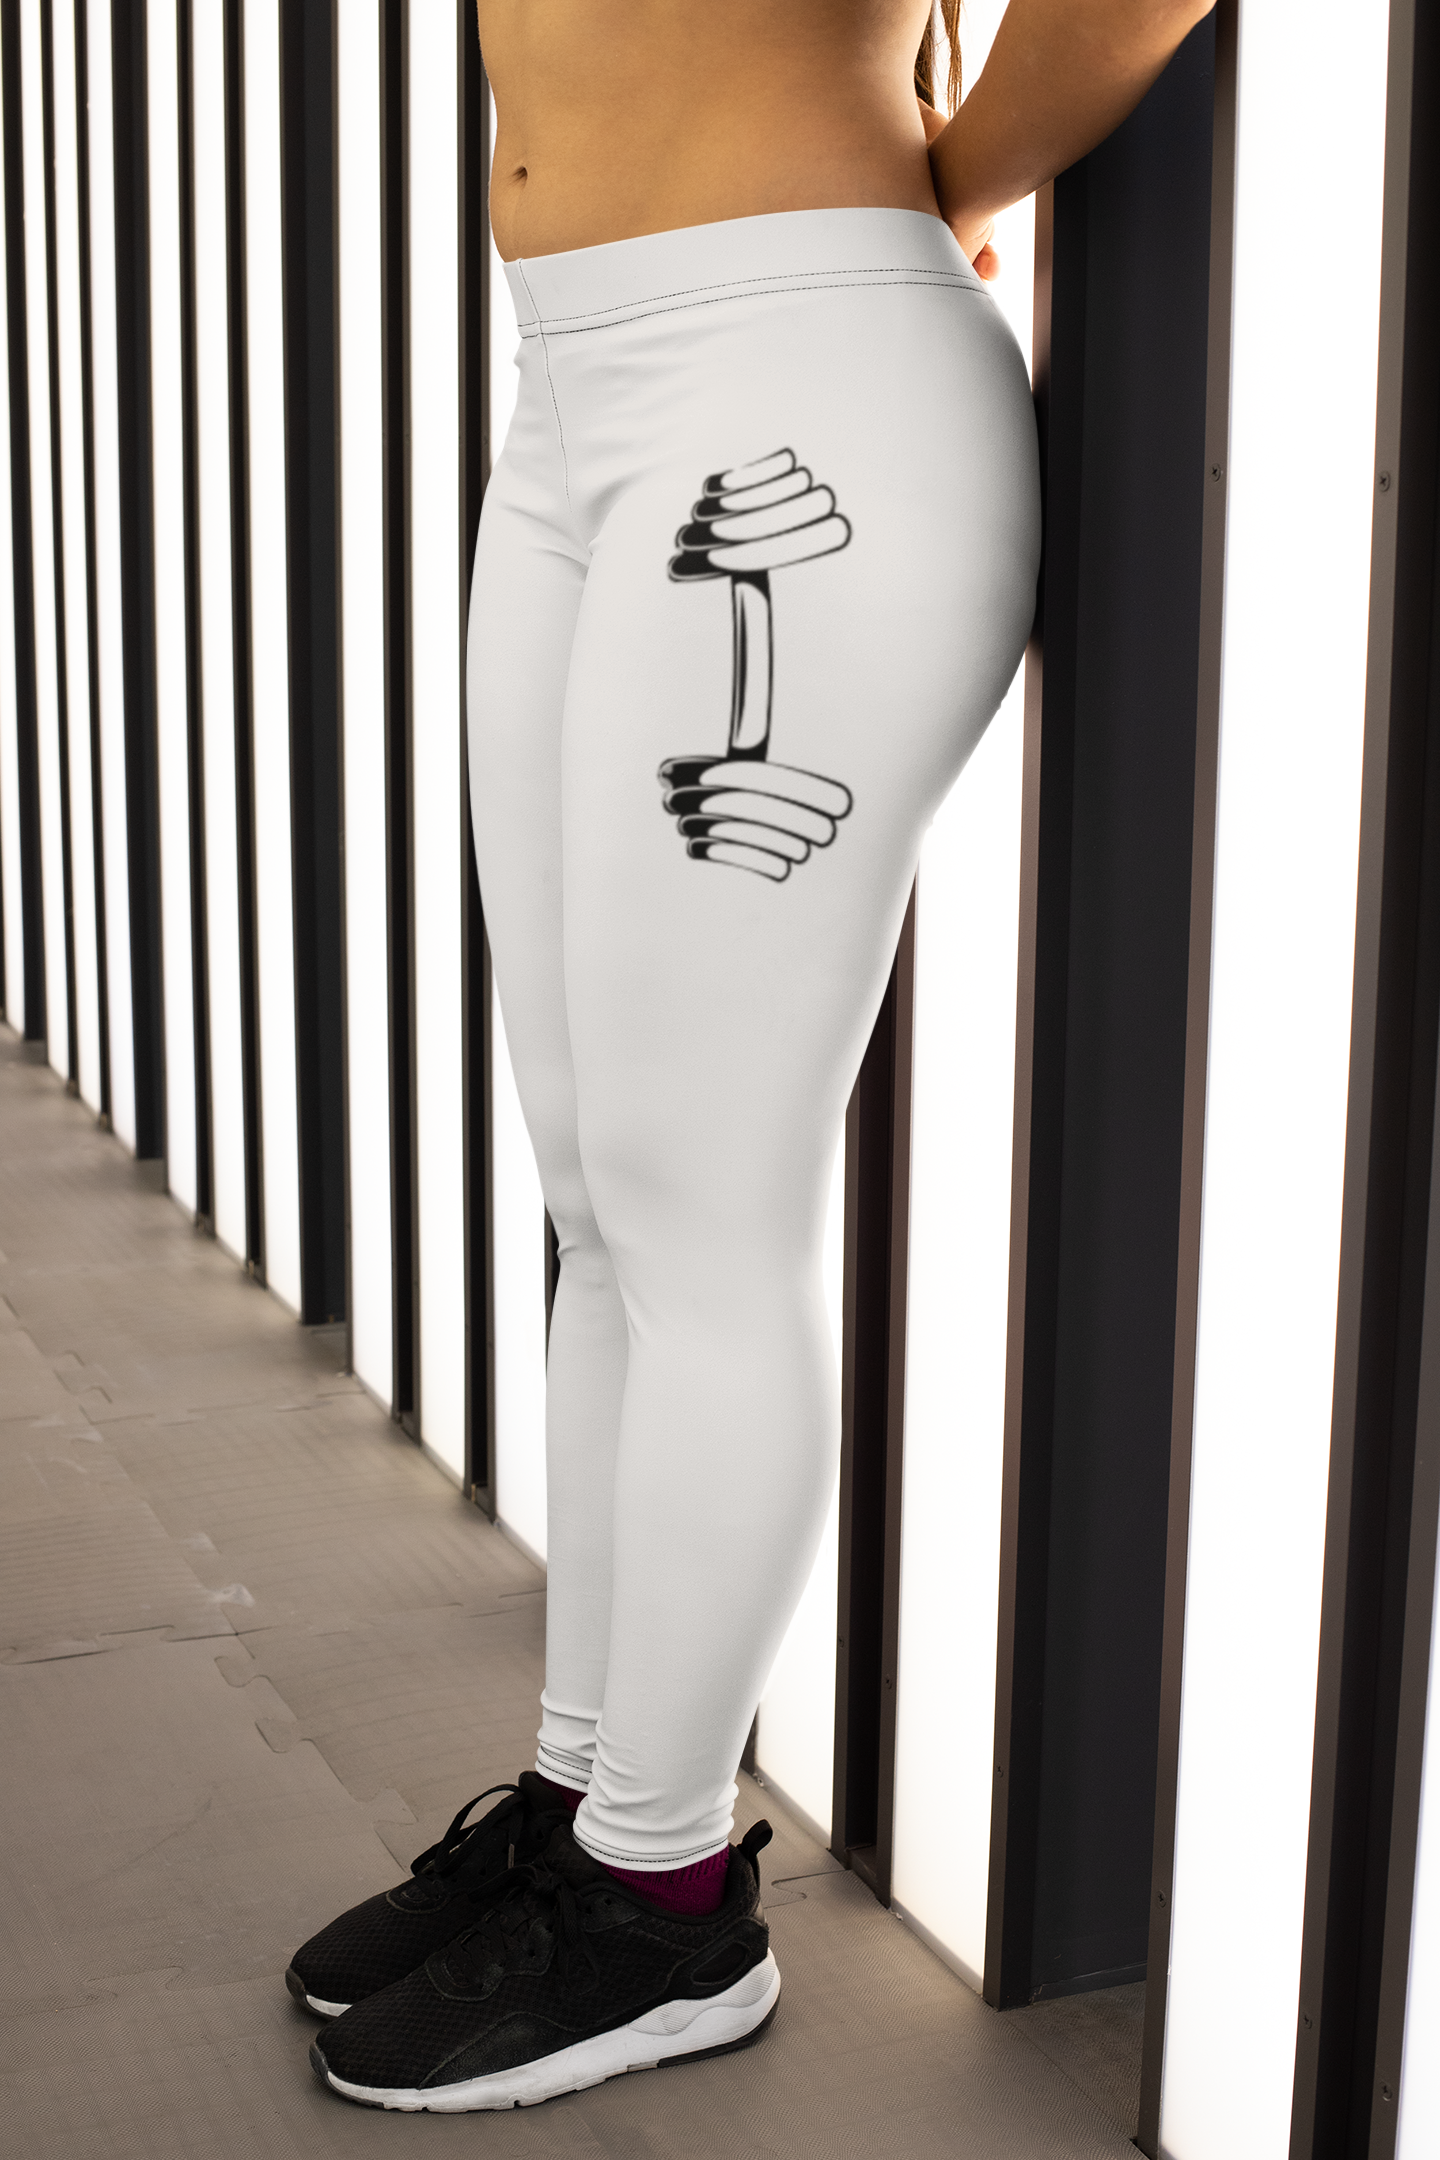 leggings-mockup-of-a-woman-leaning-against-a-wall-with-lights-28700